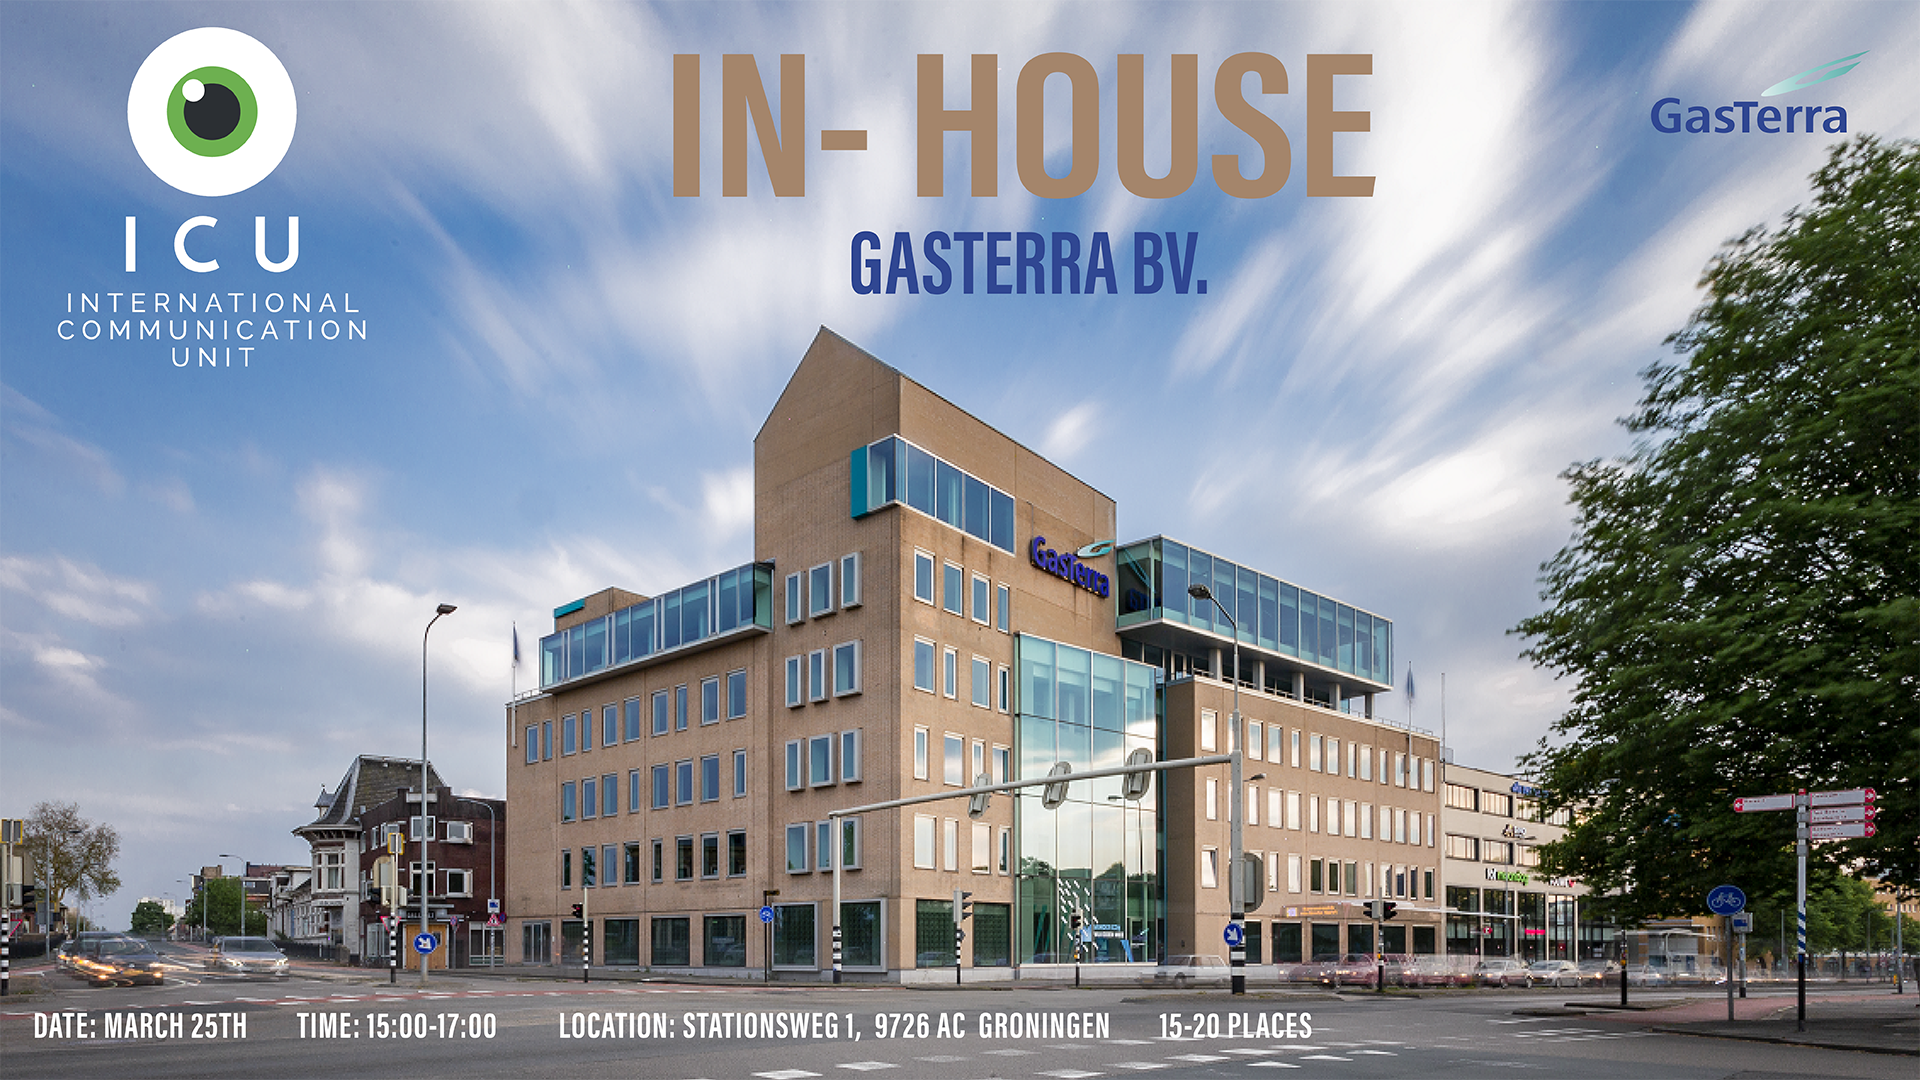 ICU In-house visit: GasTerra.